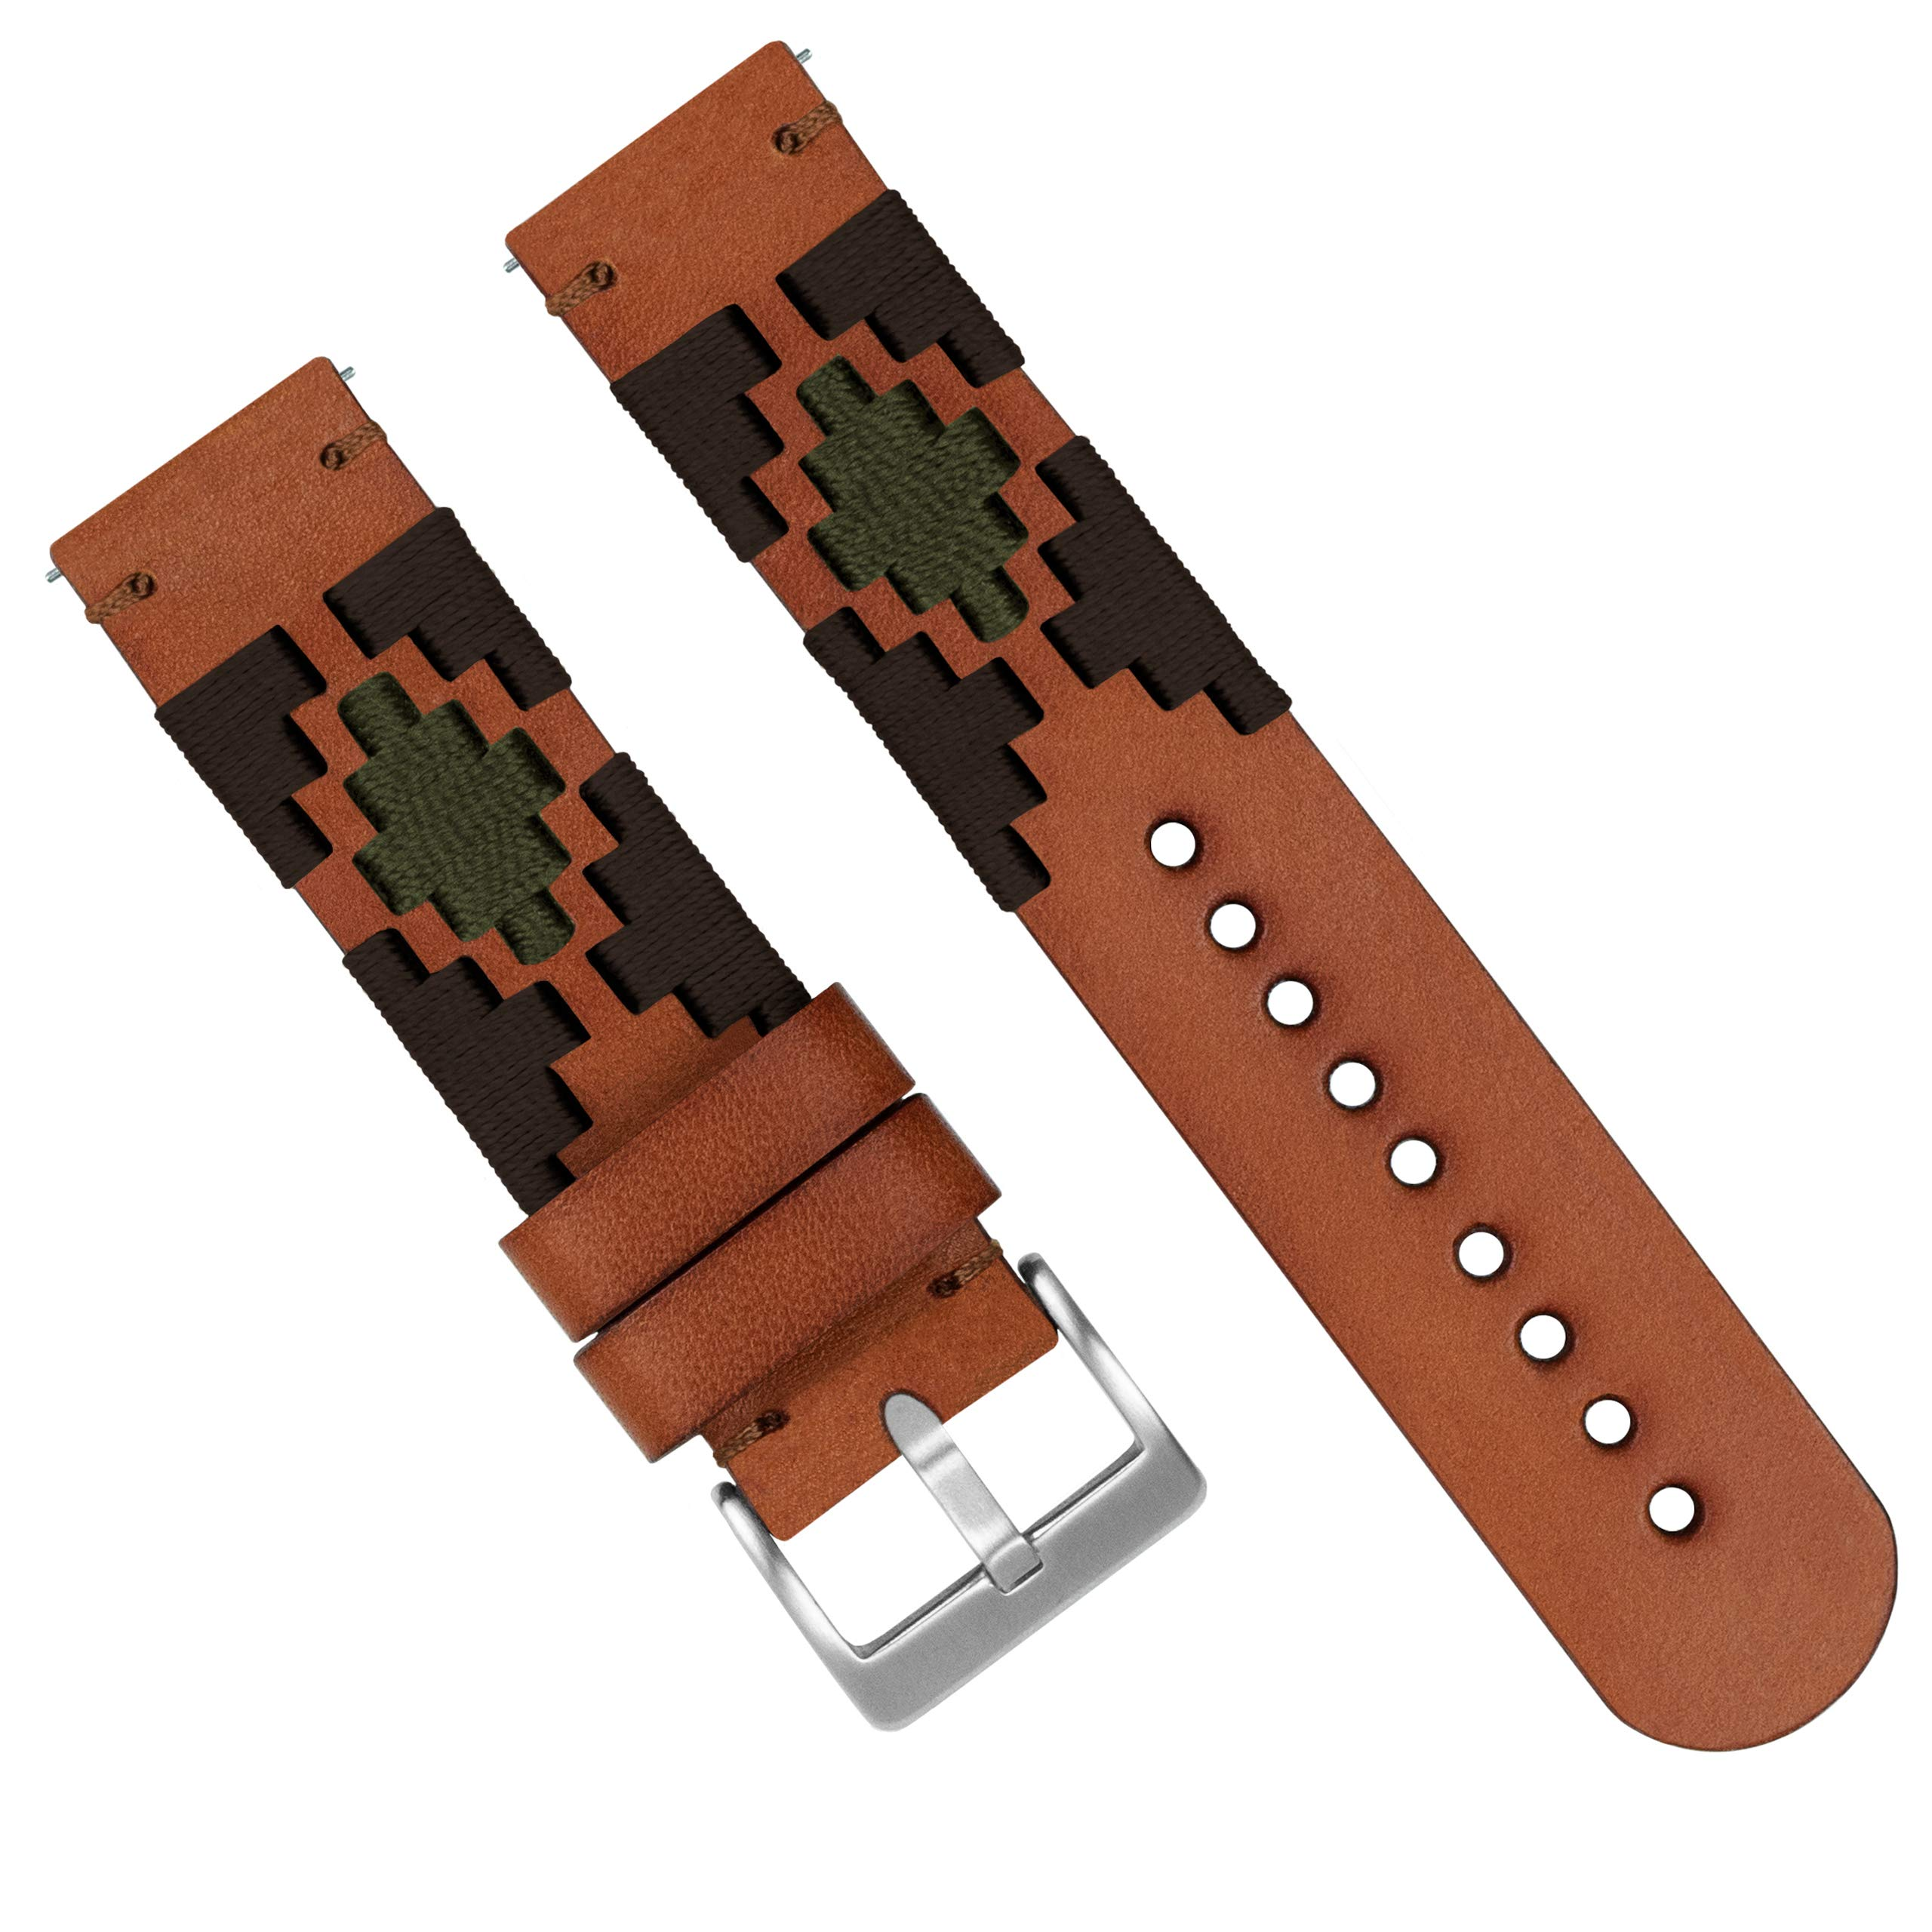 Barton Gaucho Leather Quick Release Watch Band Straps - Choose Color & Width - 18mm, 20mm, 22mm (20mm, Brown & Green) by Barton Watch Bands